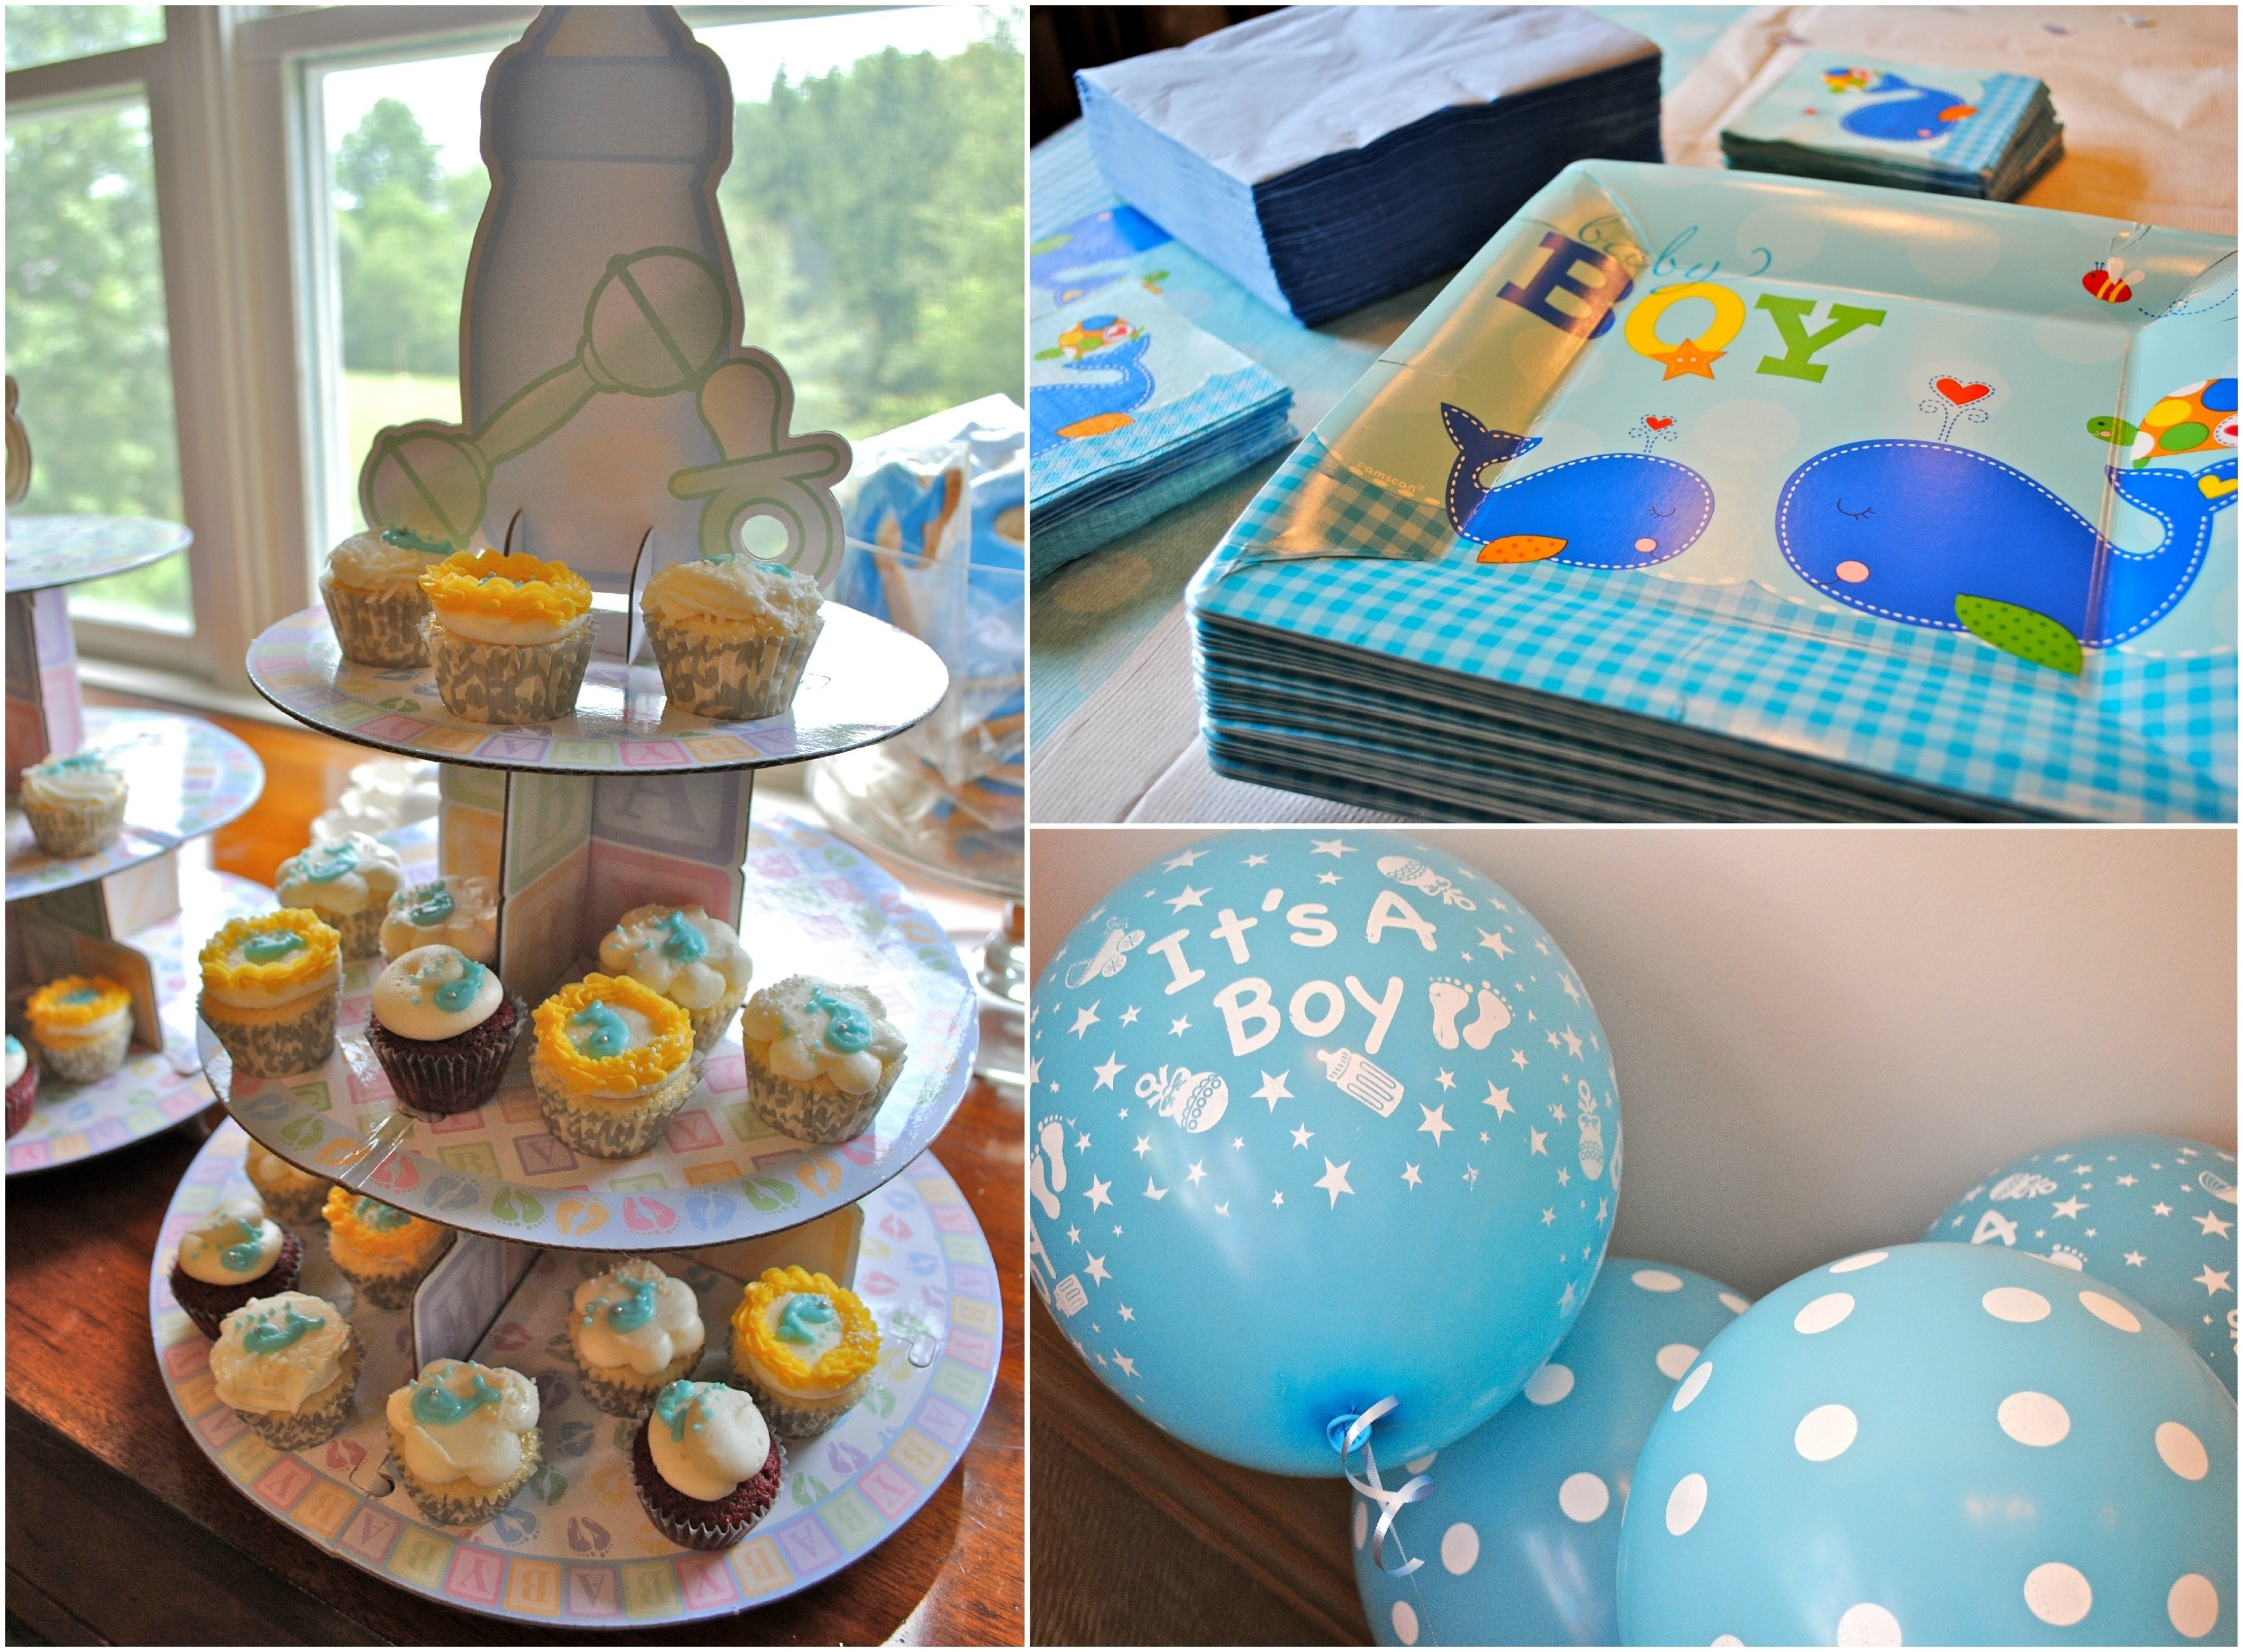 10 Lovable Boy Themed Baby Shower Ideas gorgeous dining room outdoor long dinning table decoration for baby 2020